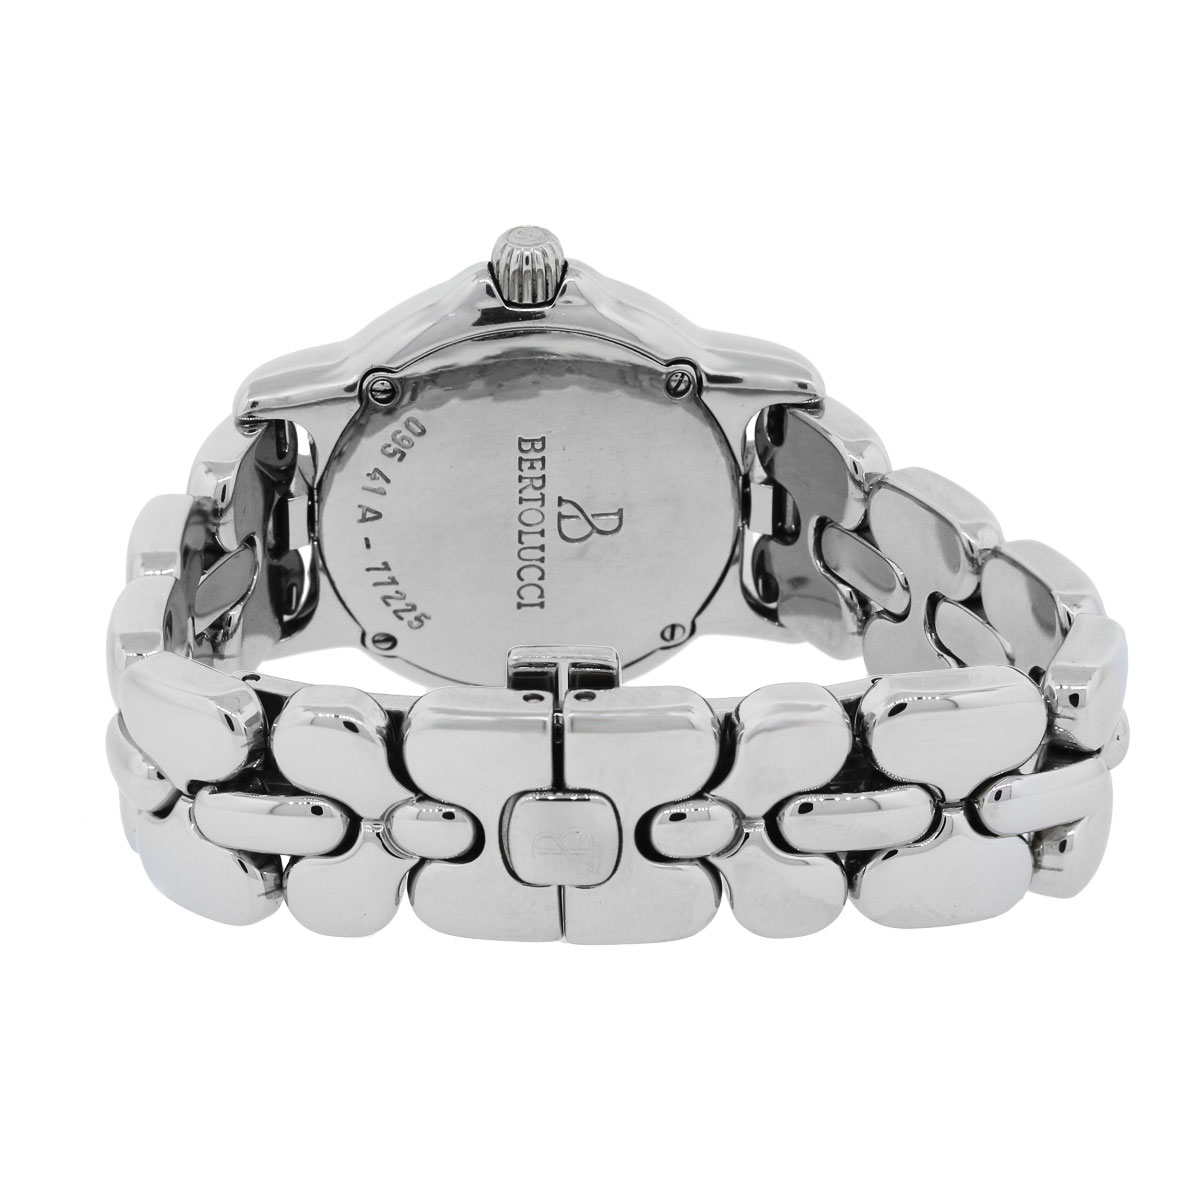 Bertolucci Vir Mother of Pearl Diamond Ladies Watch